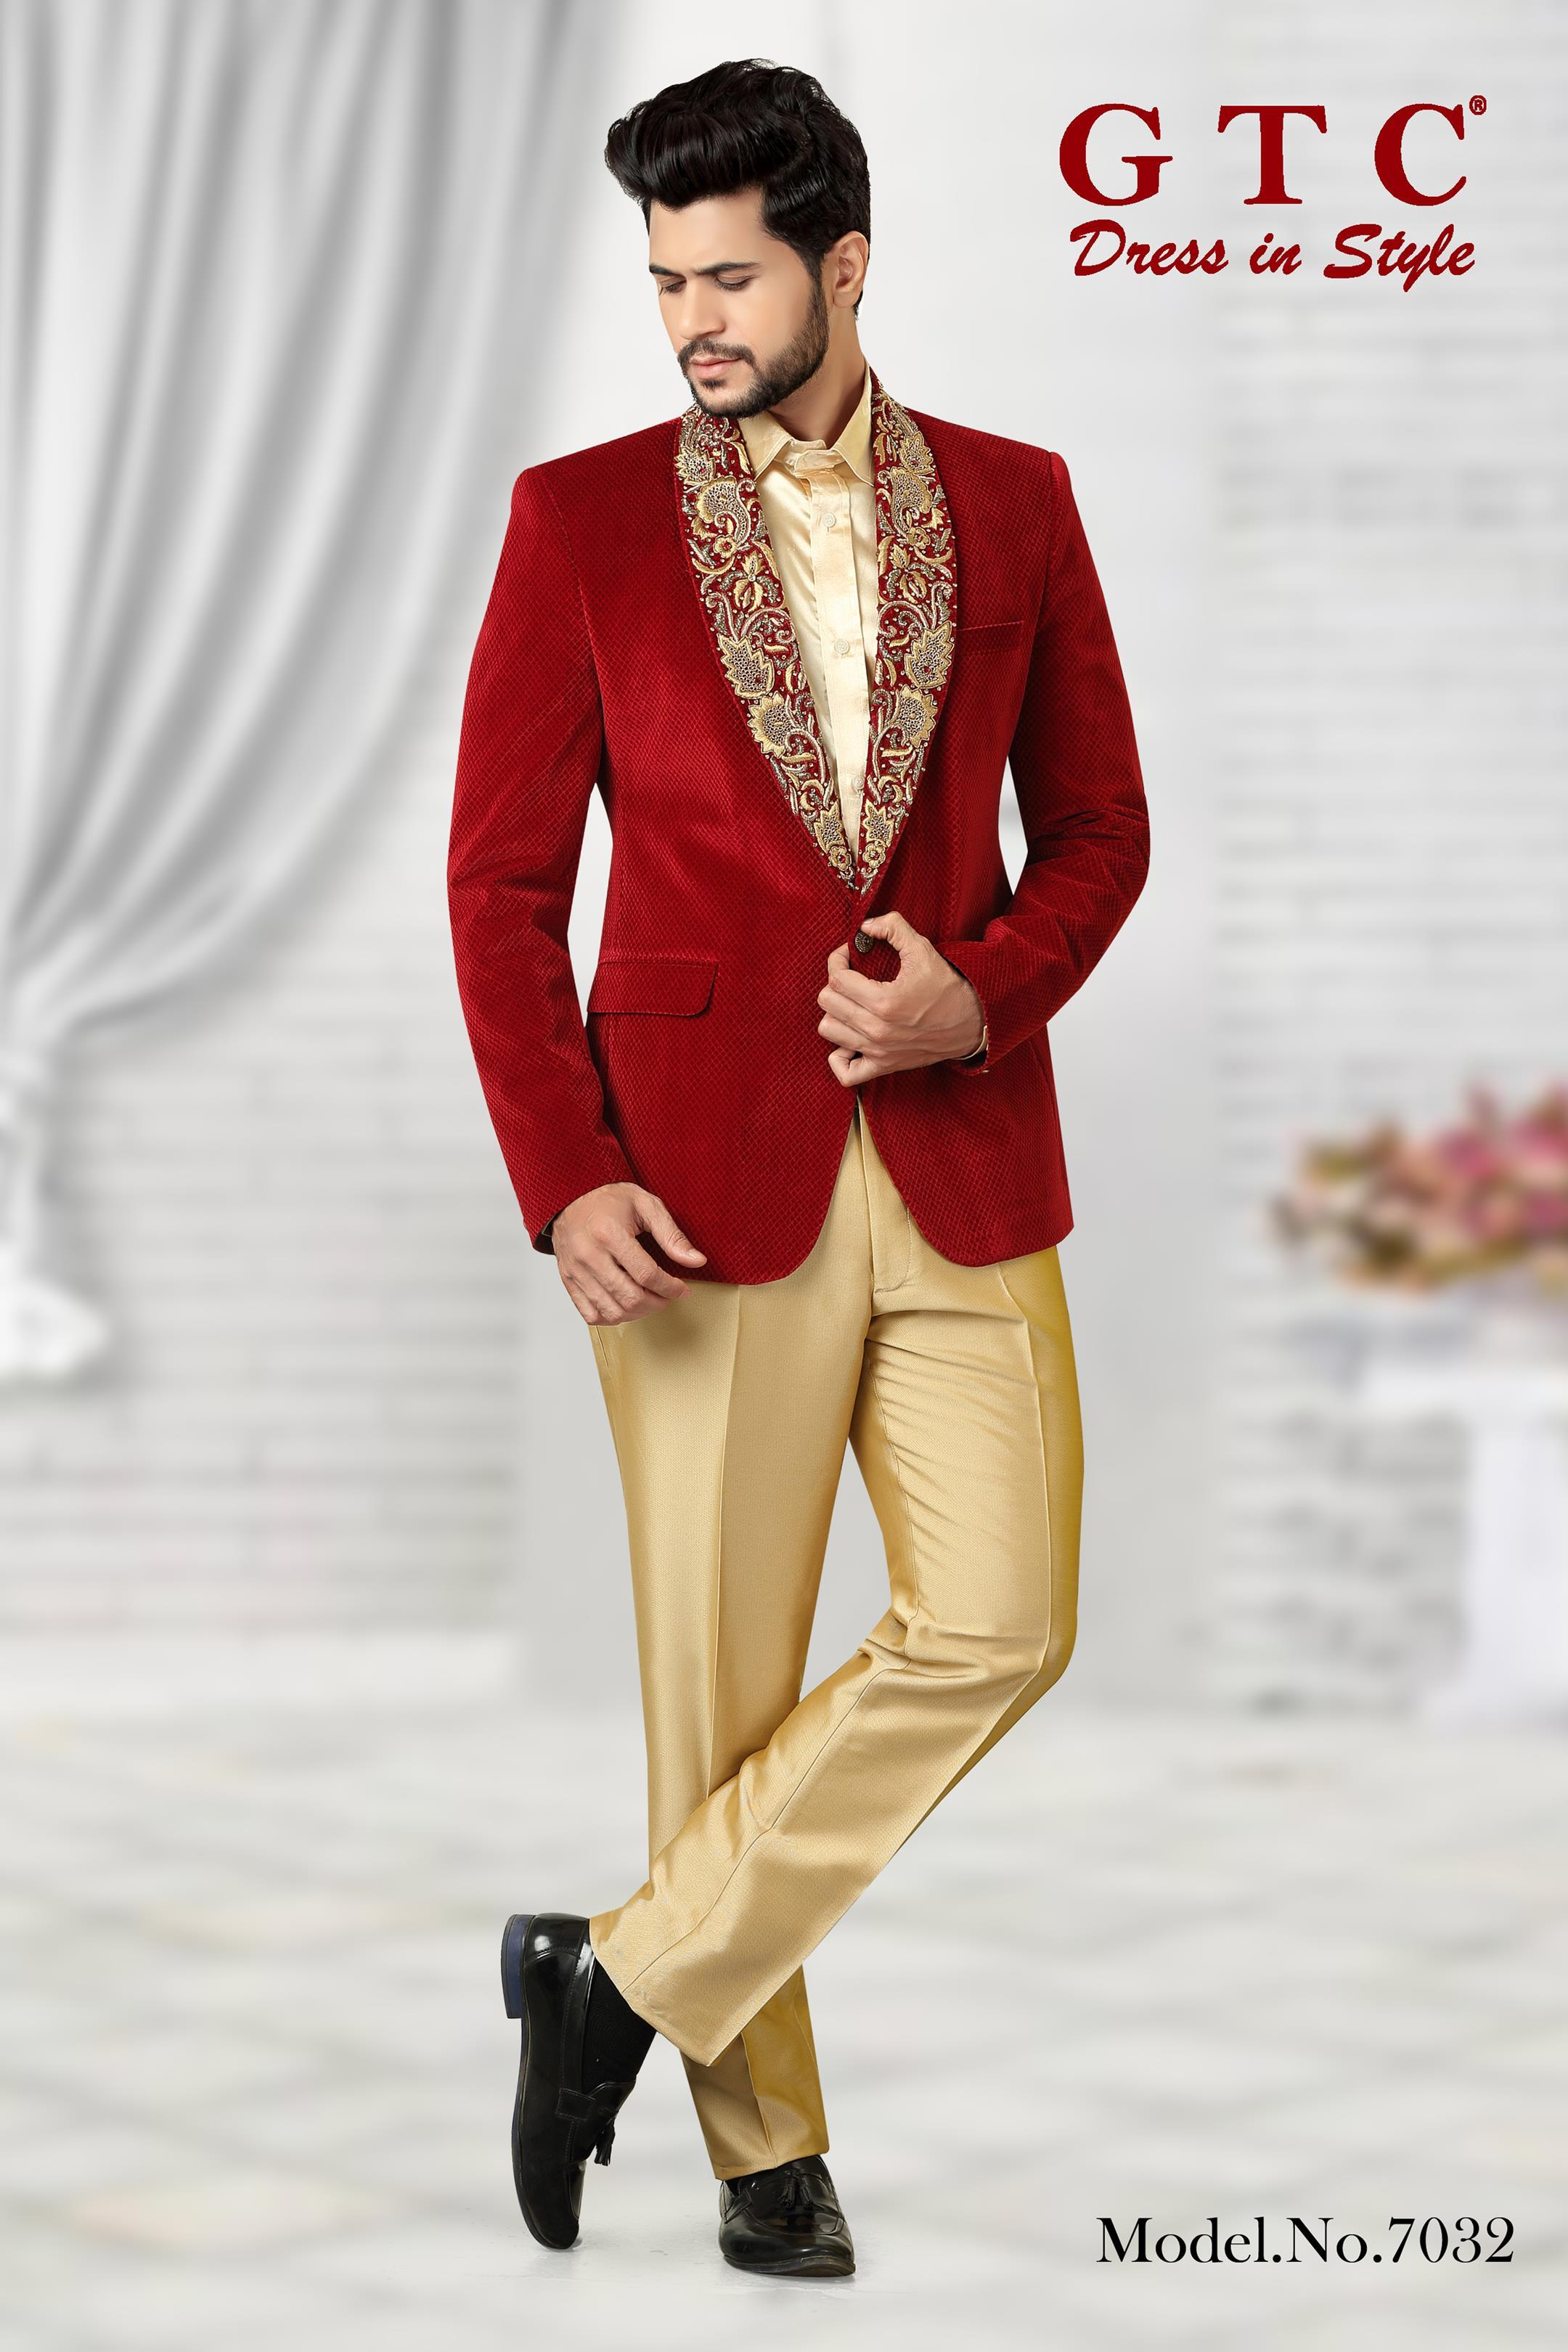 7032 WEDDING SUIT